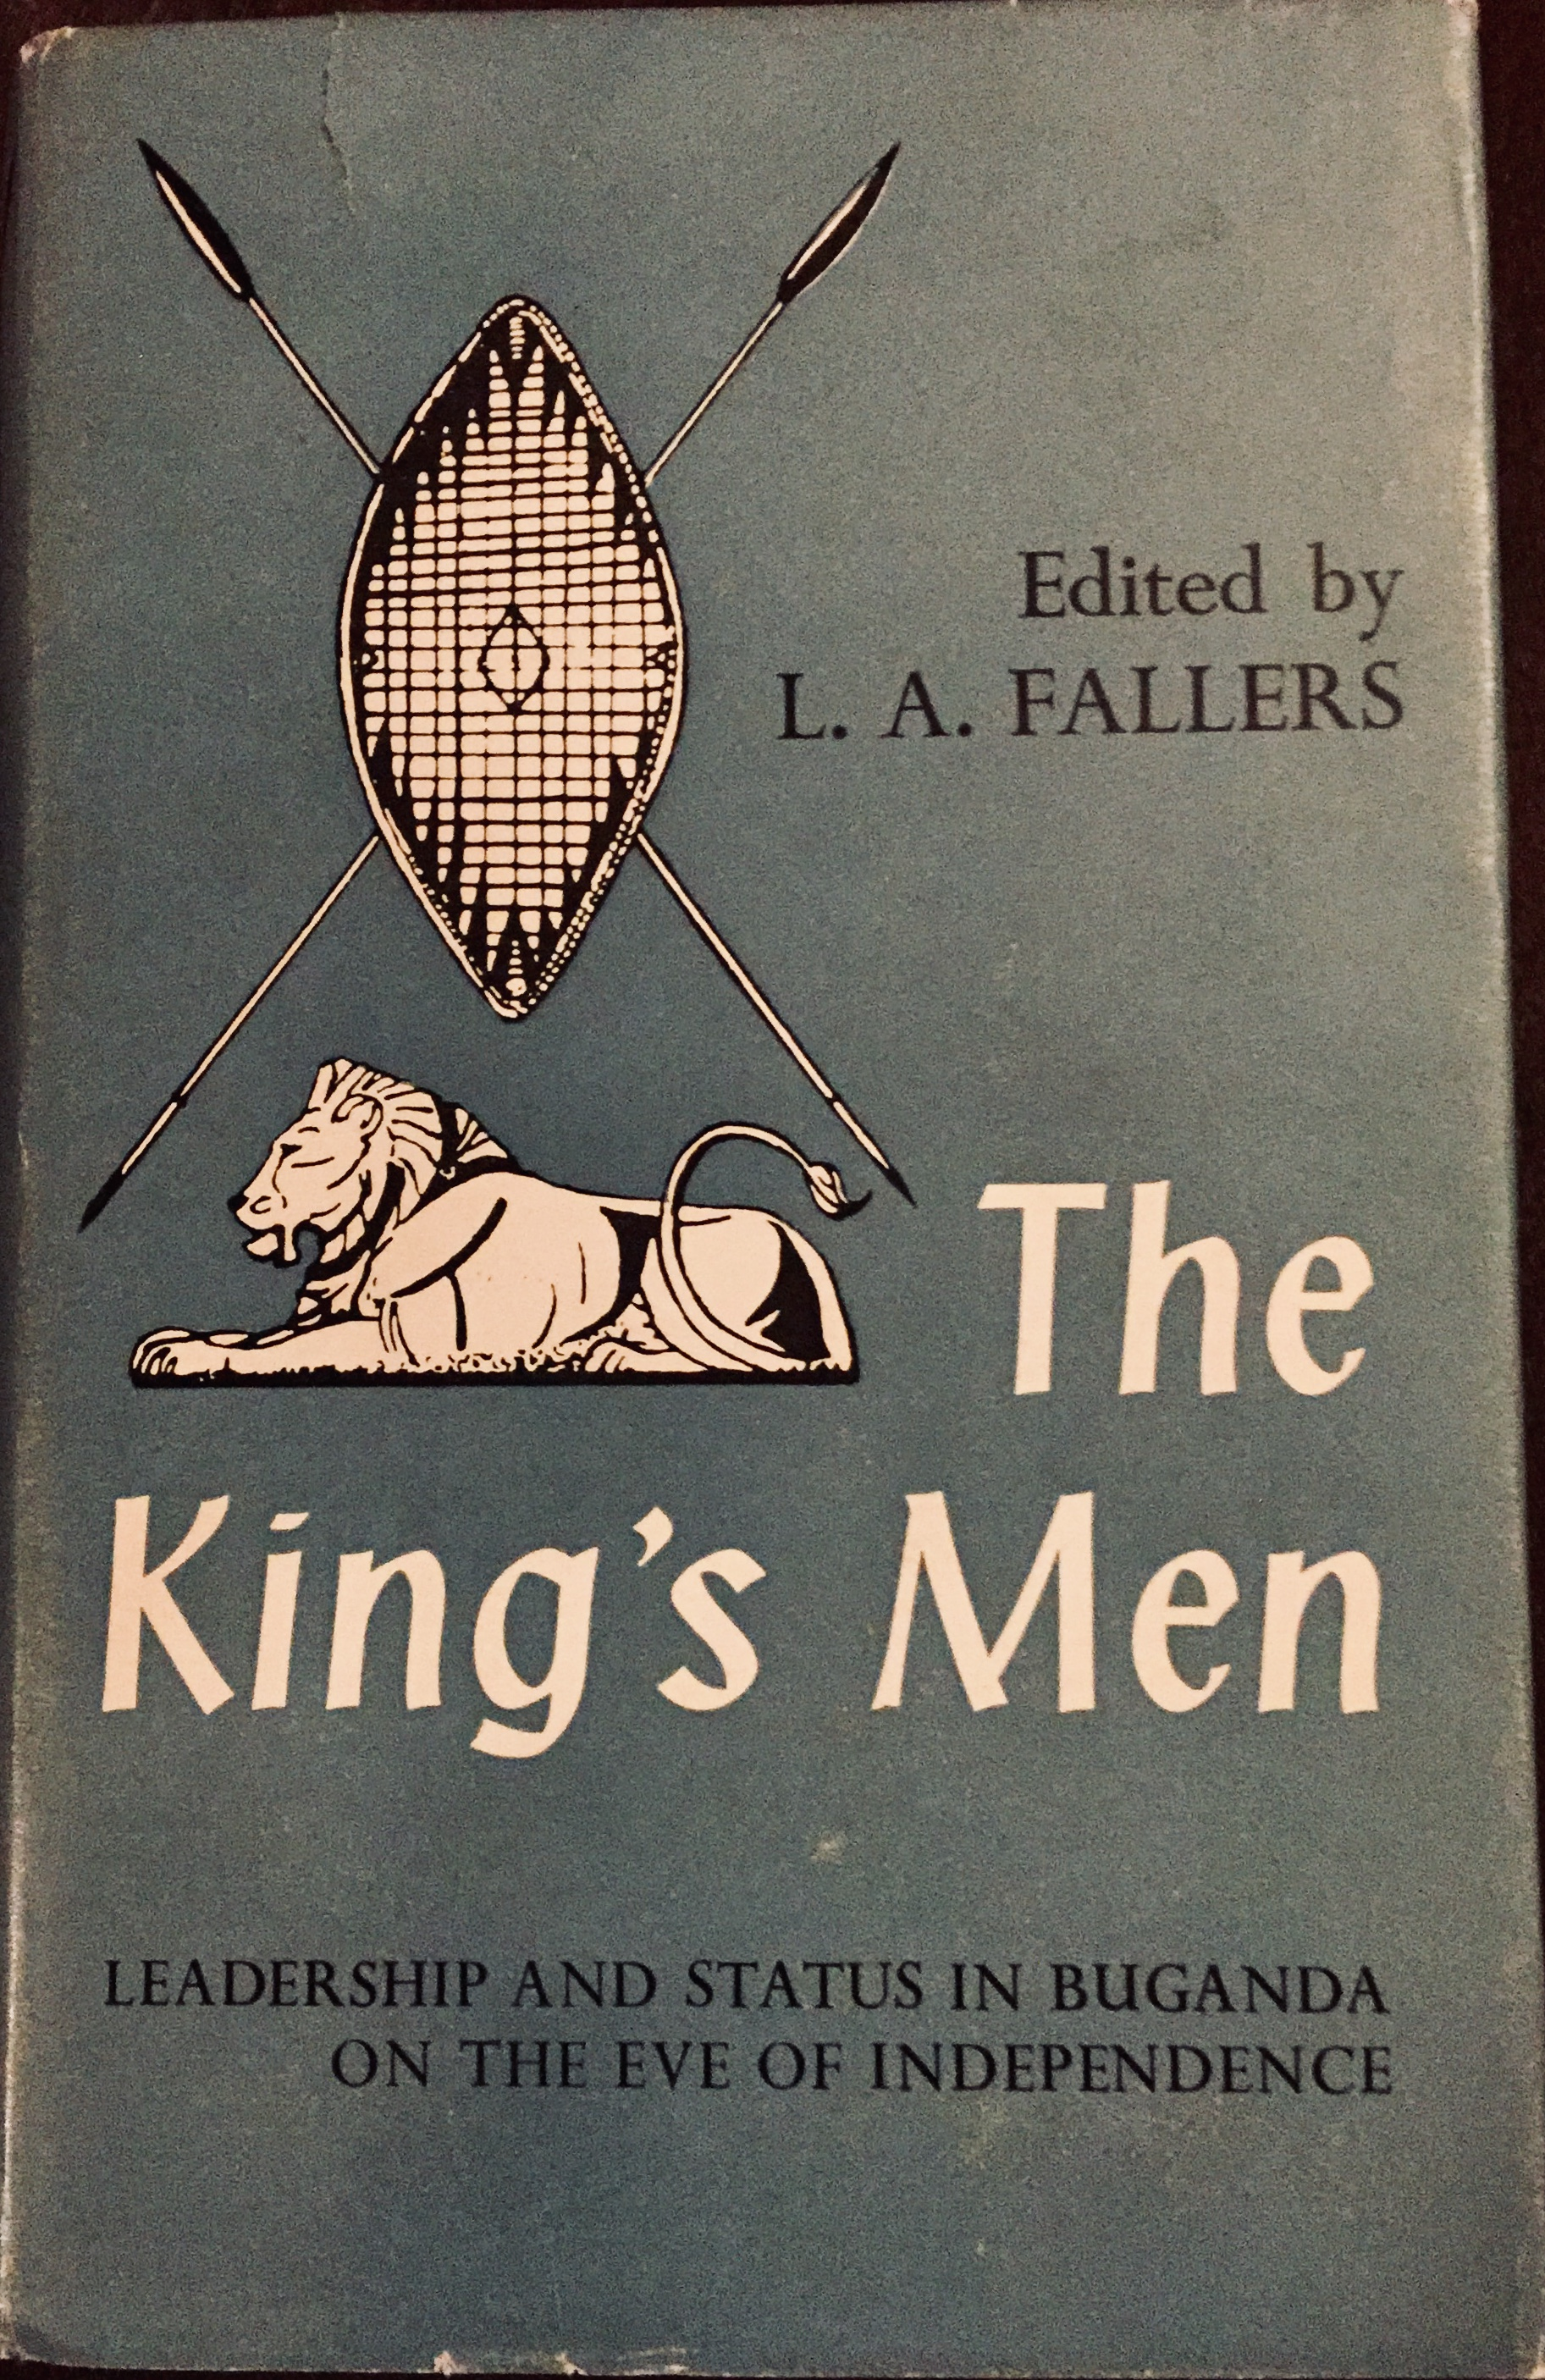 The King's Men: Leadership and Status in Buganda on the Eve of Independence – Edited by L.A. Fallers (1964)